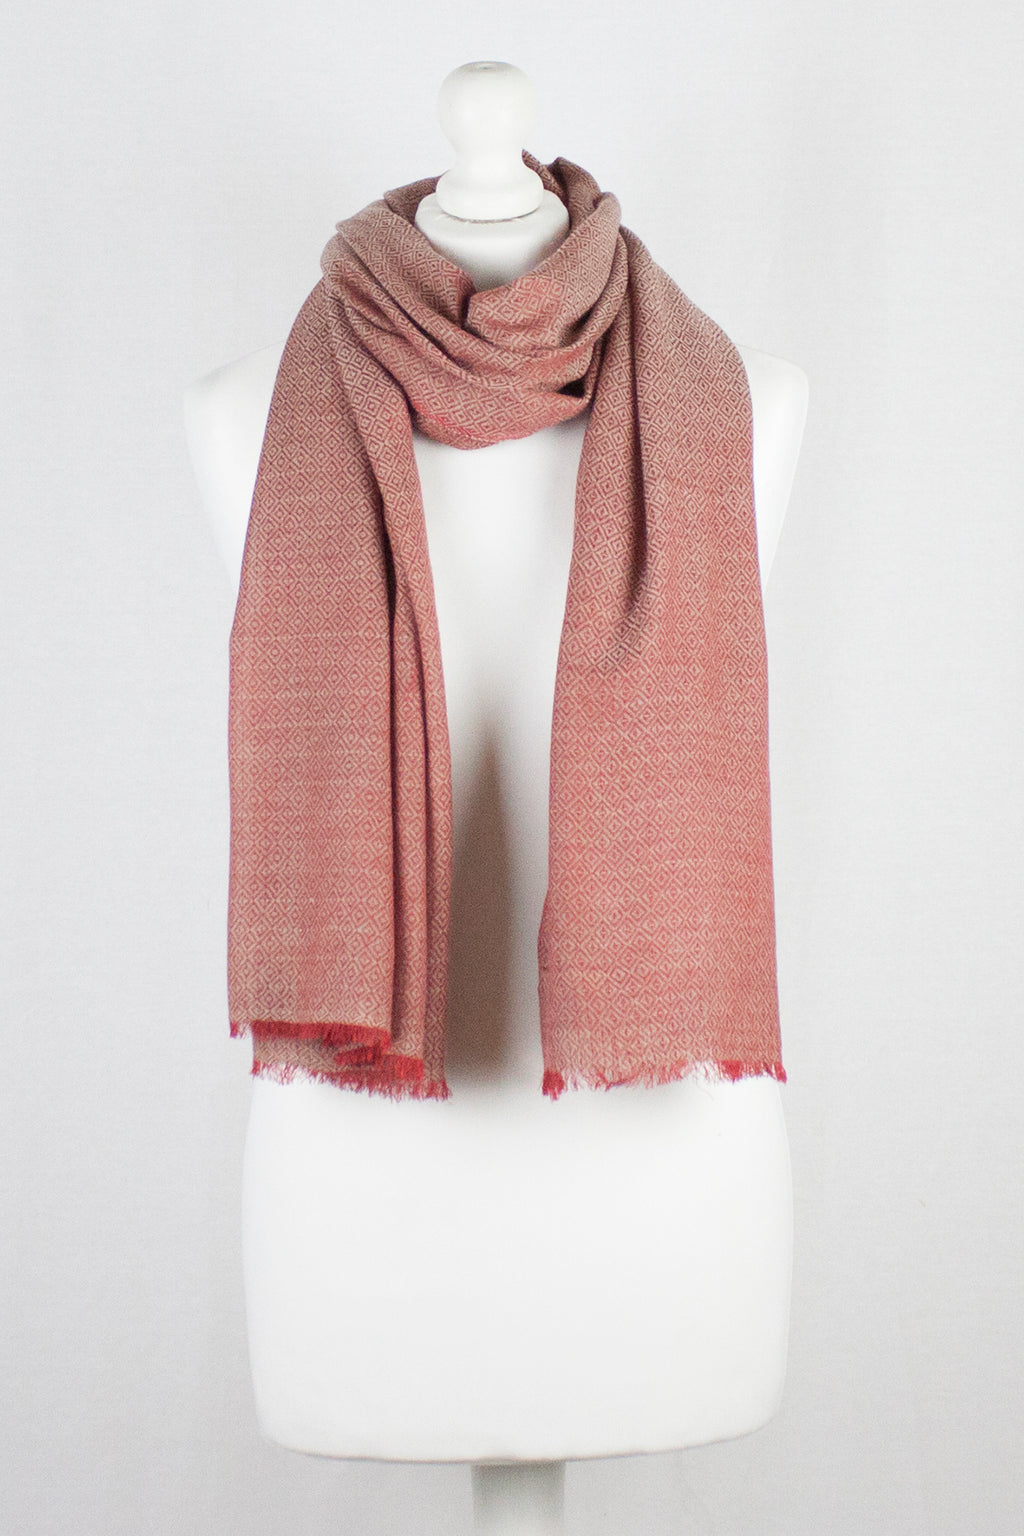 Diamond Weave Two Tone Merino Wool Scarf - Red